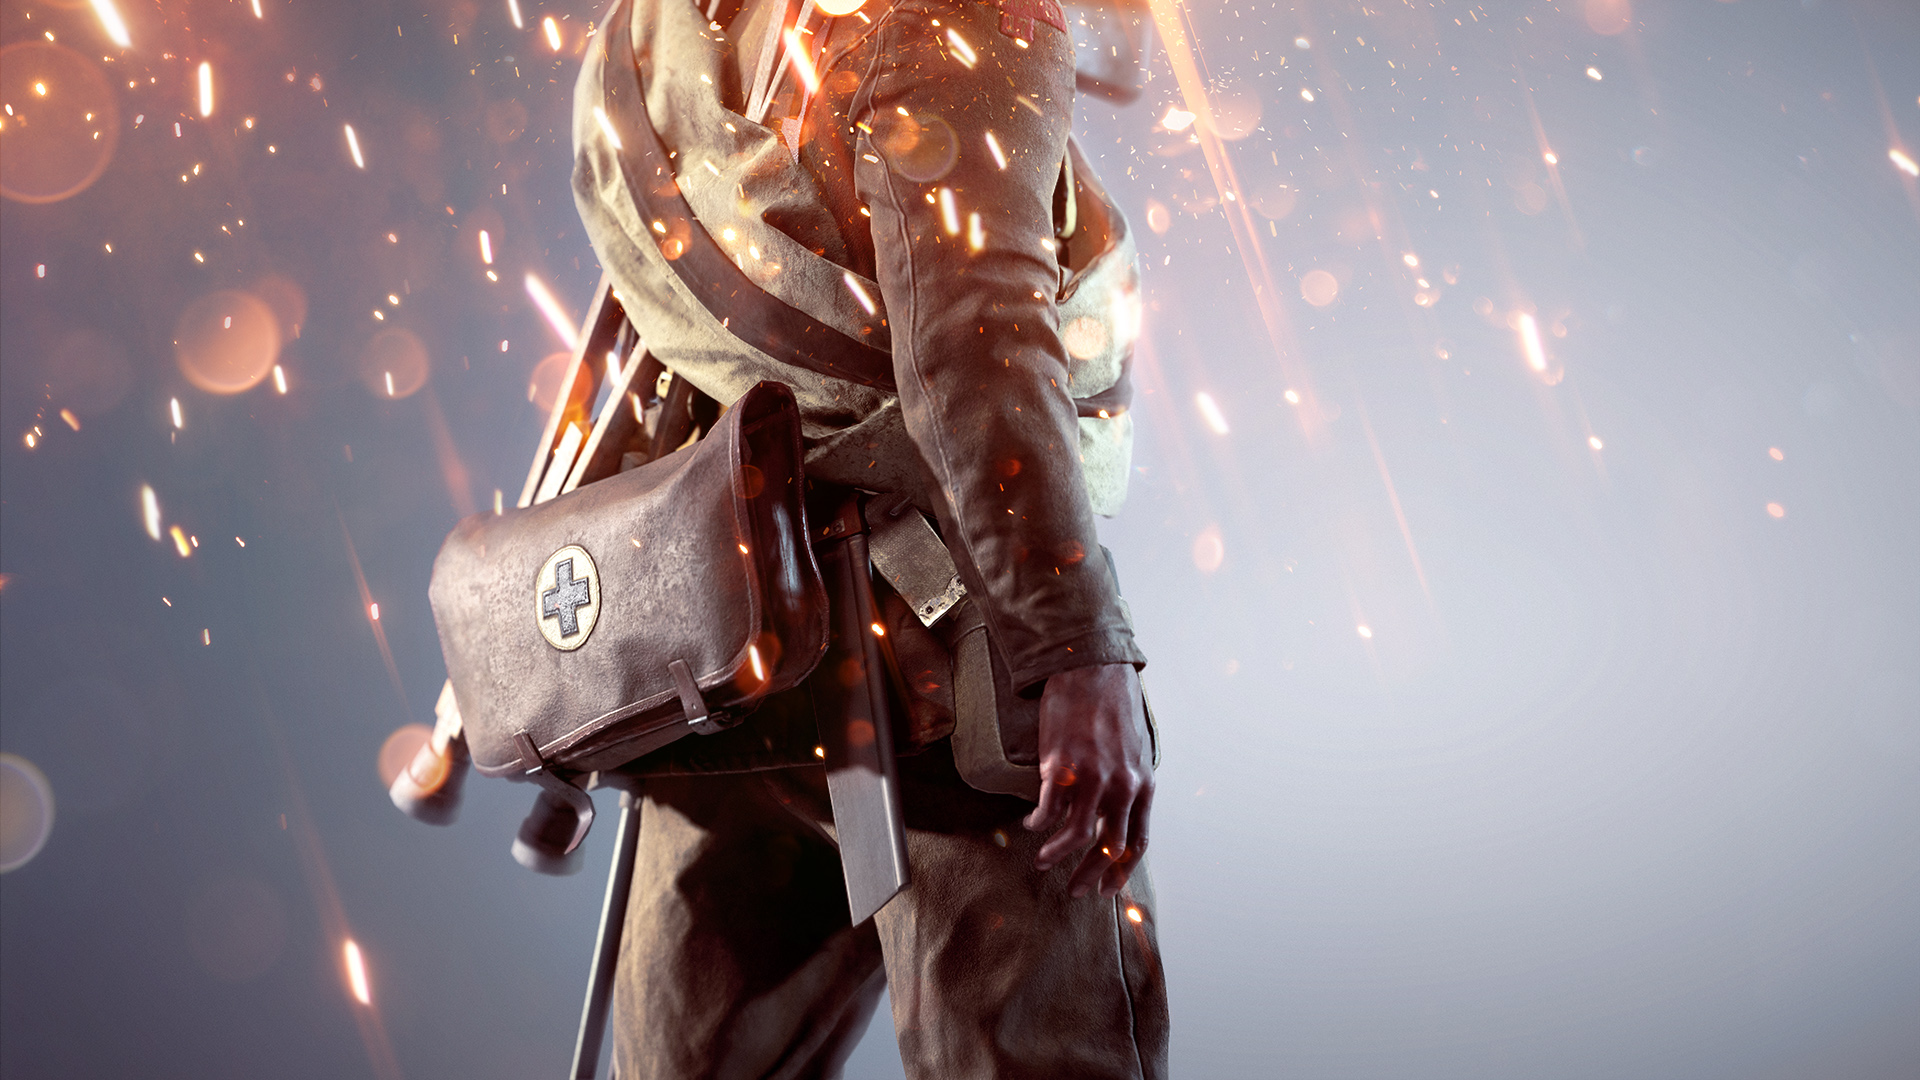 Très bien Extreme Battlefield 1 HD, HD Games, 4k Wallpapers, Images, Backgrounds  MO08